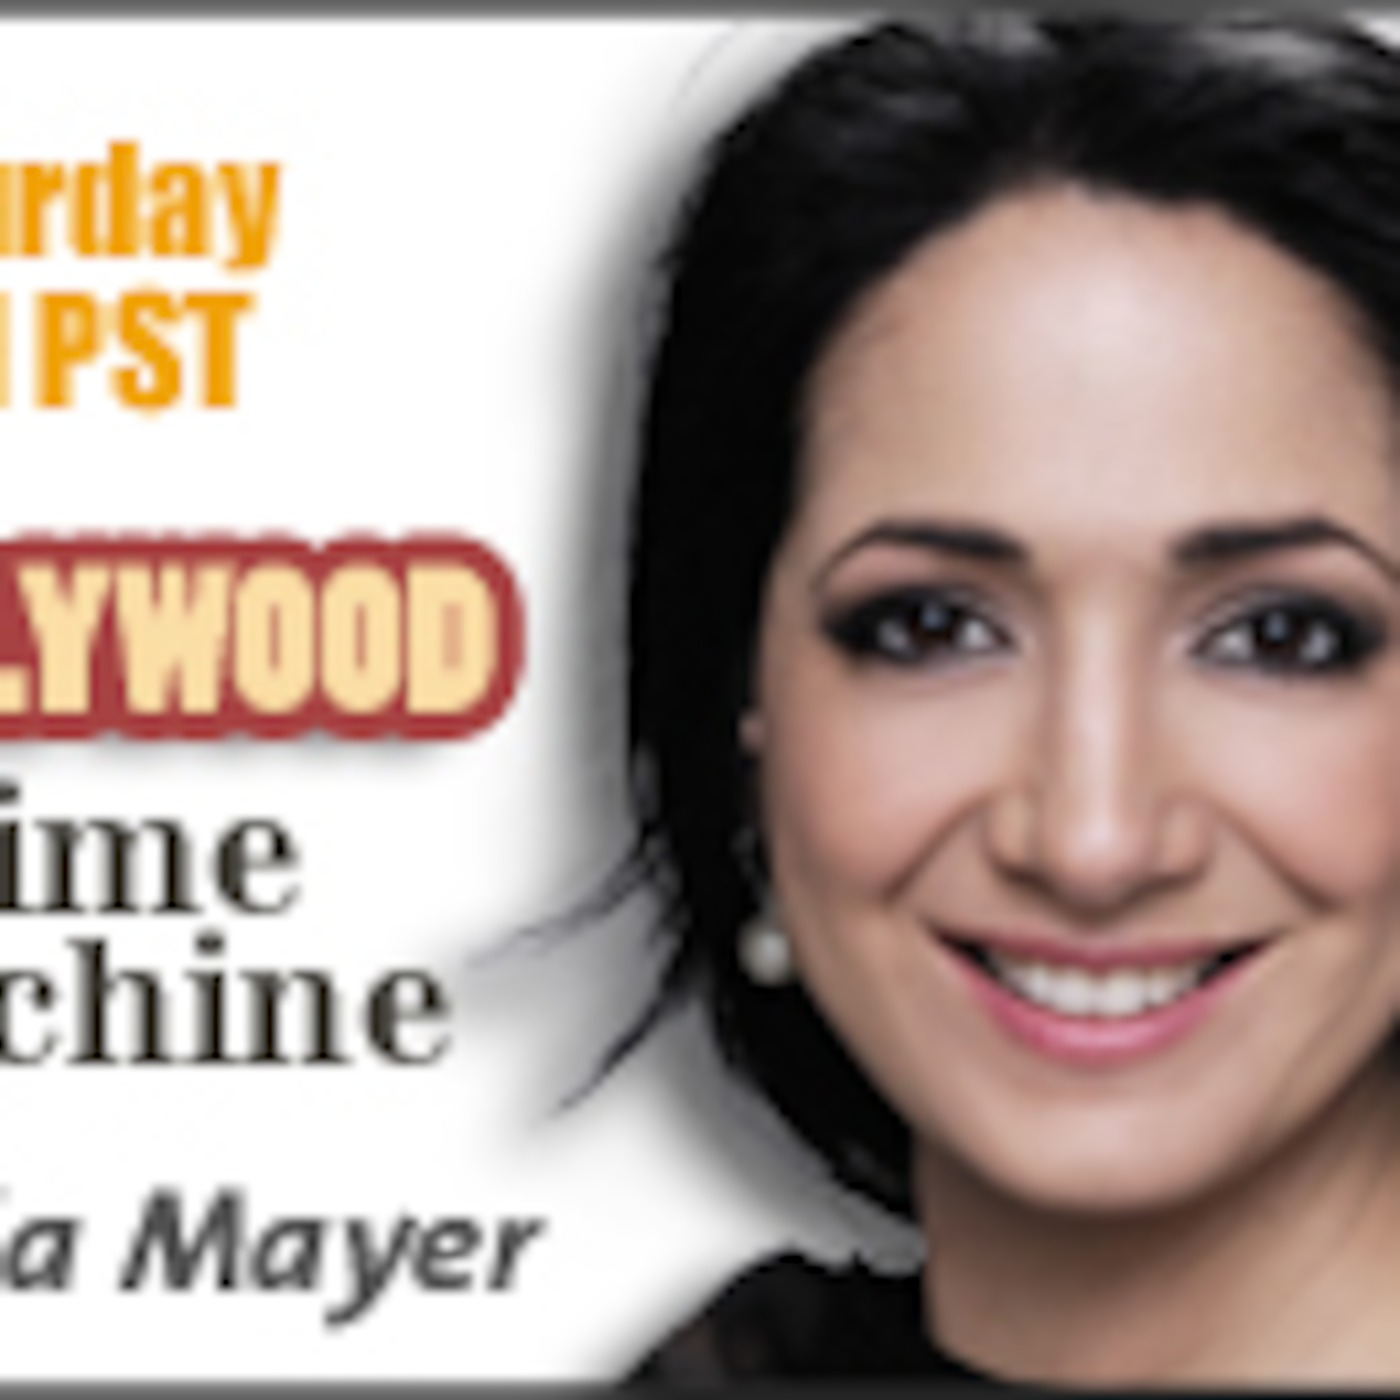 Hollywood Time Machine Talk Radio Show with Alicia Mayer ep2